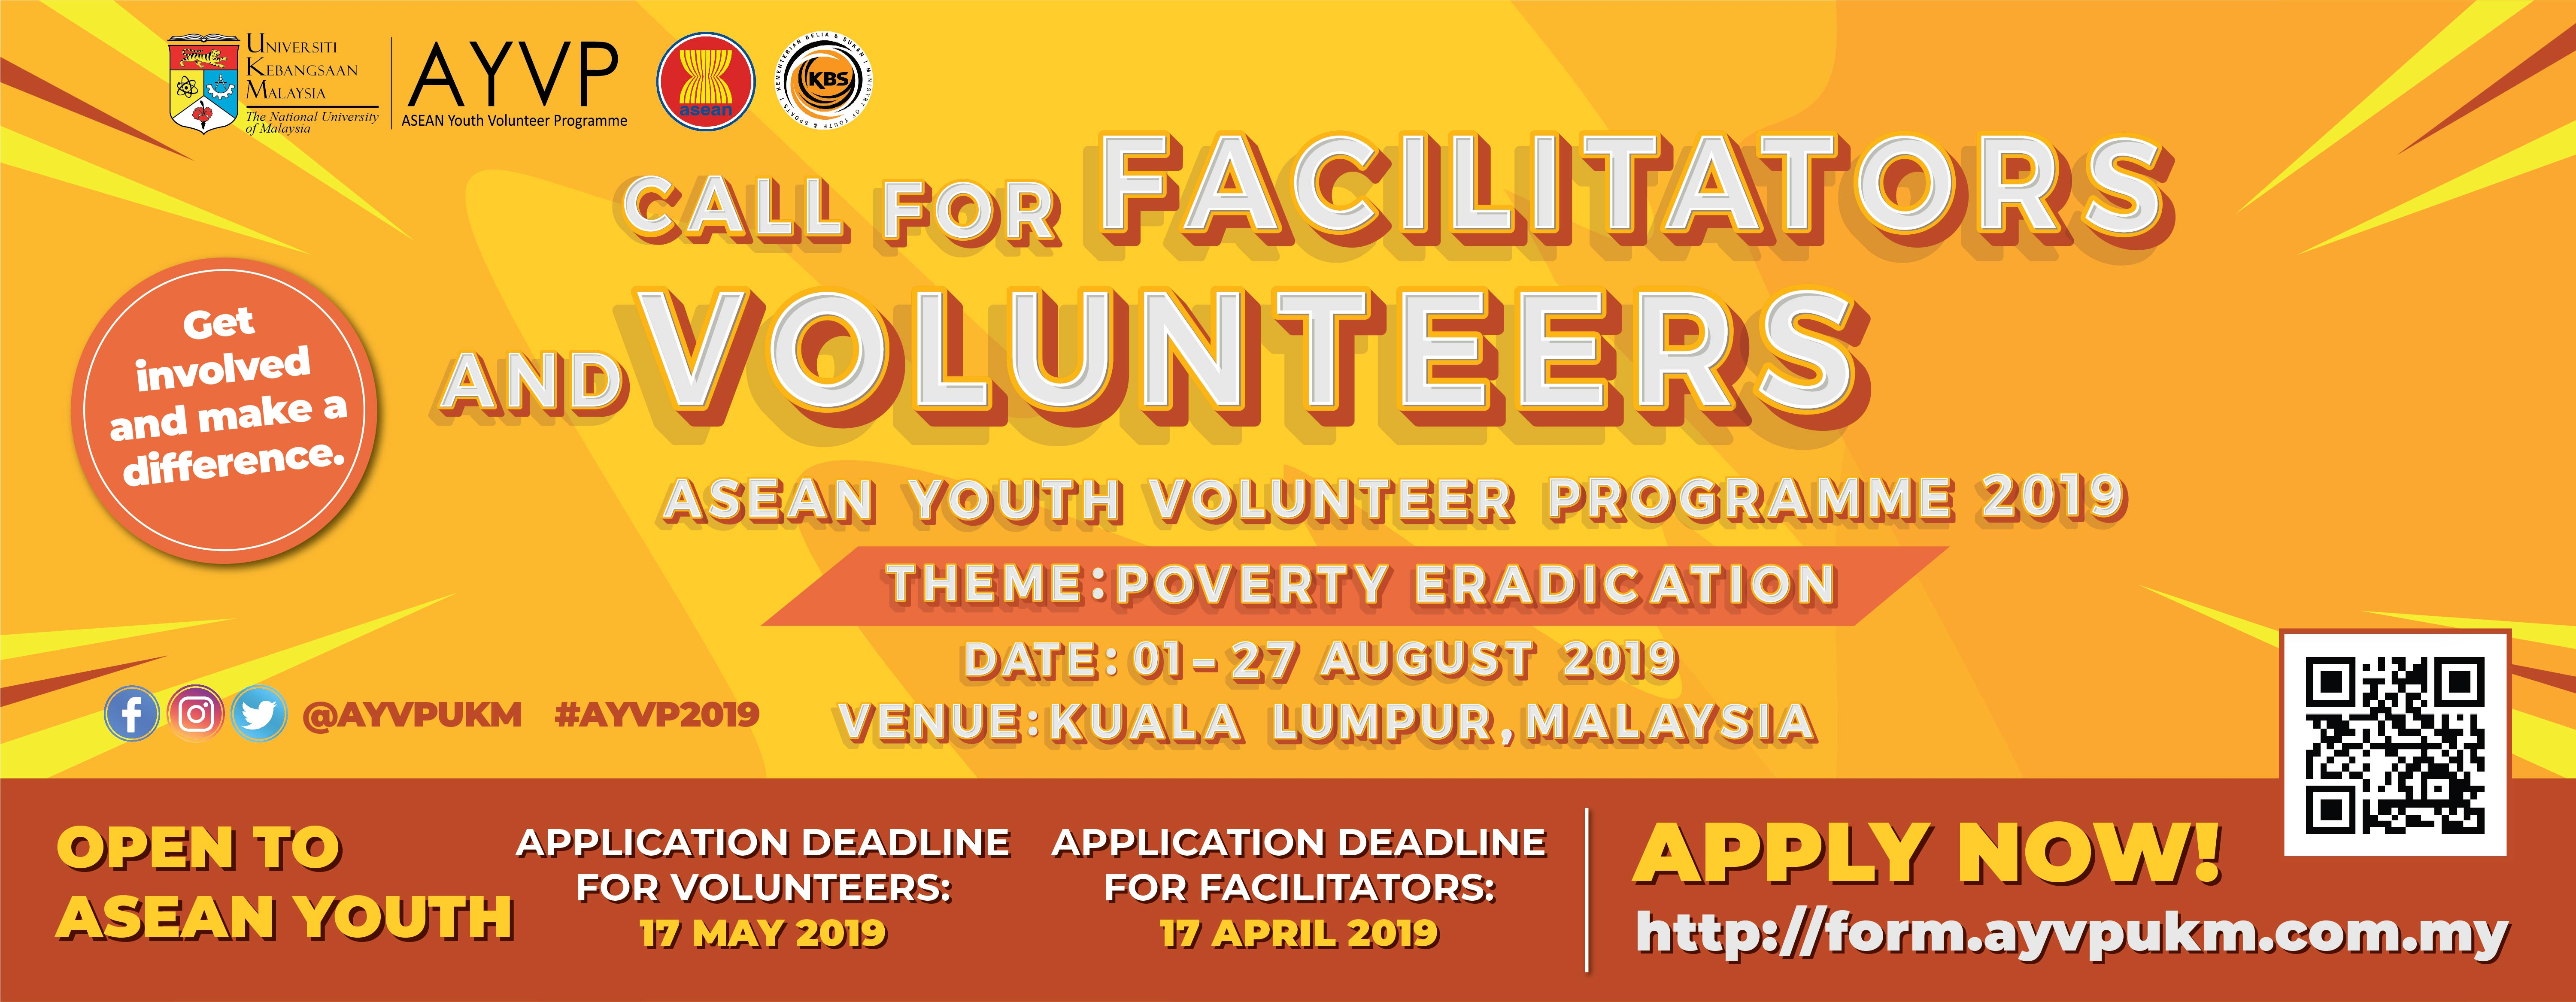 Call for AYVP Malaysia 2019 Facilitators & Volunteers!